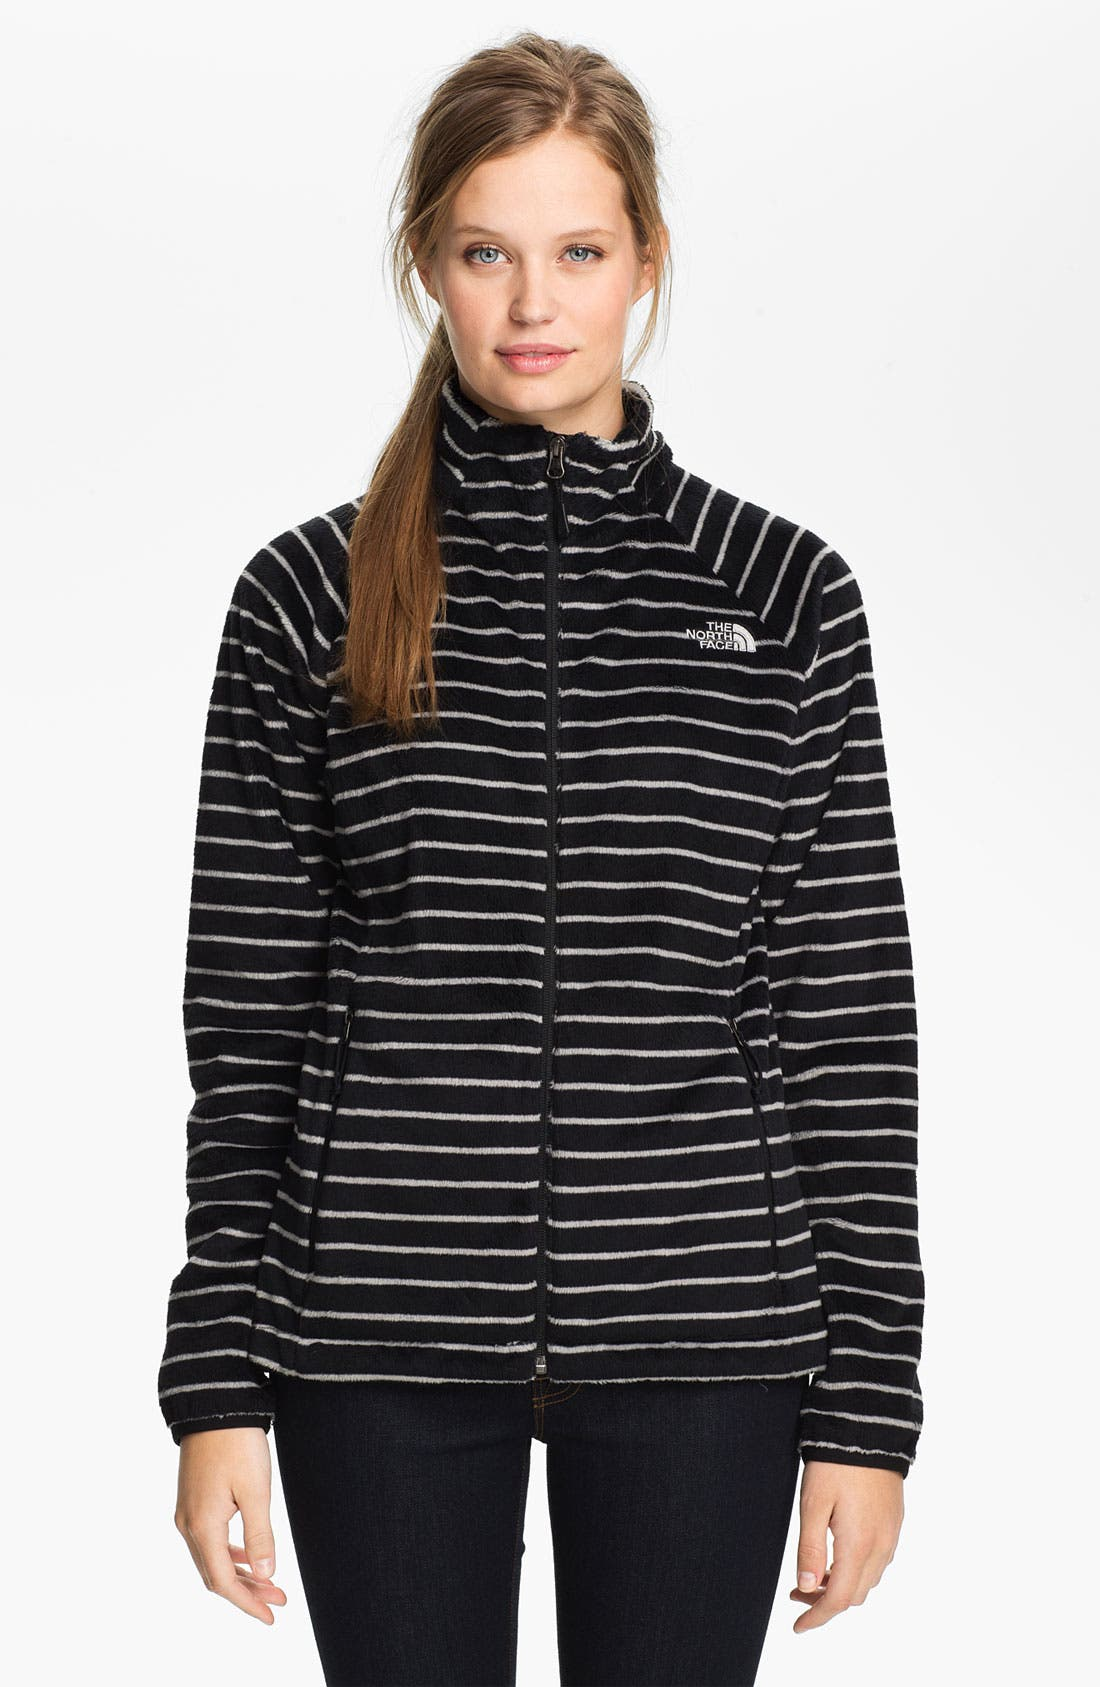 Alternate Image 1 Selected - The North Face 'Osito' Stripe Fleece Jacket